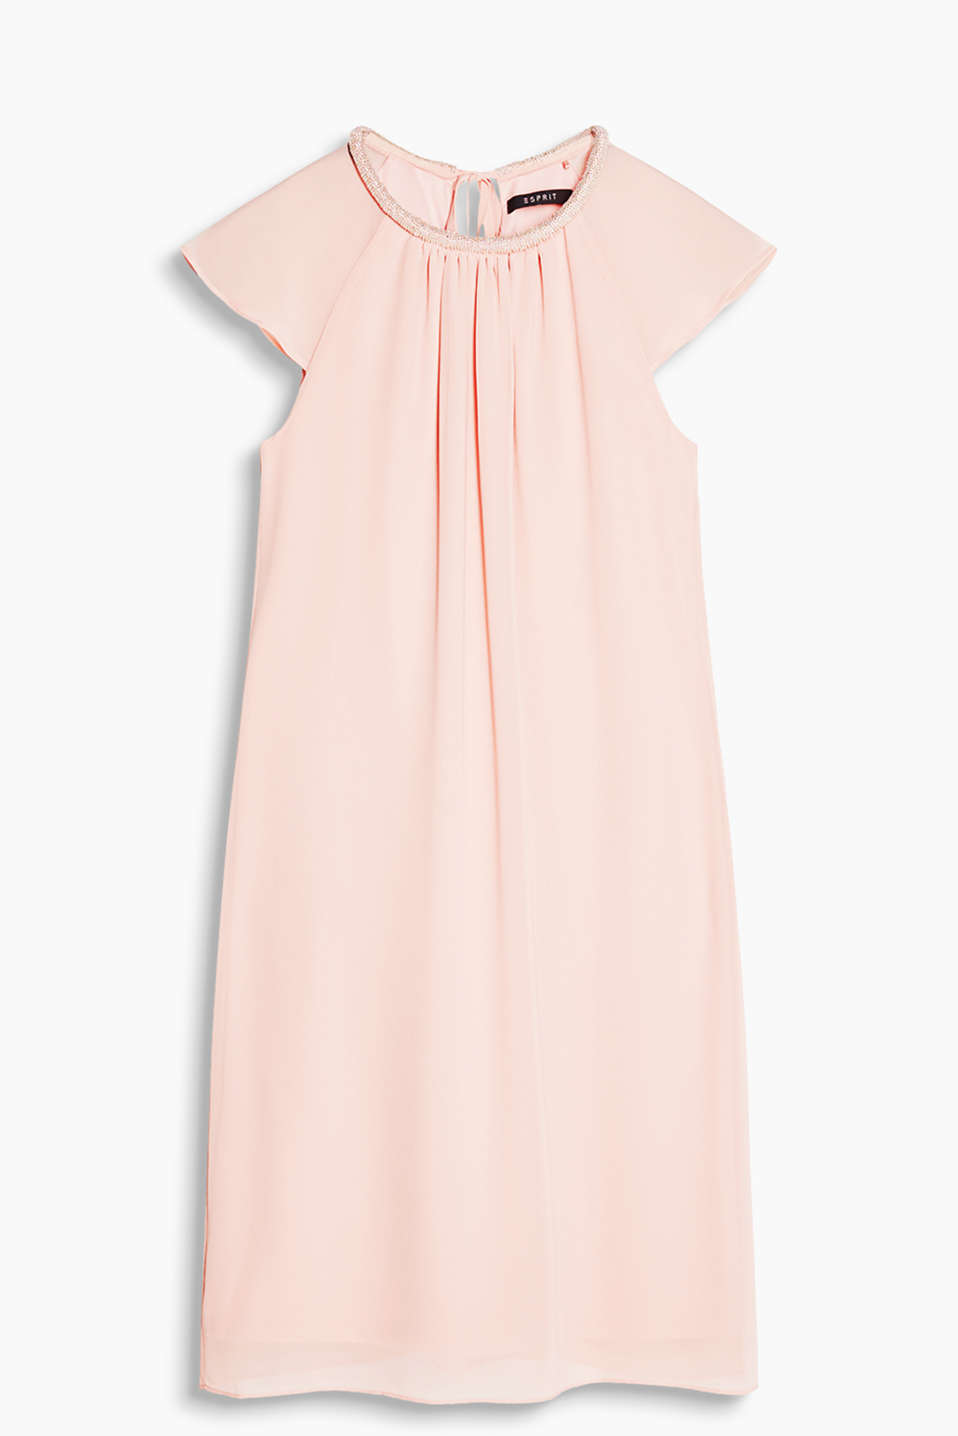 Fitted dress in delicate chiffon with embellishment at the neckline